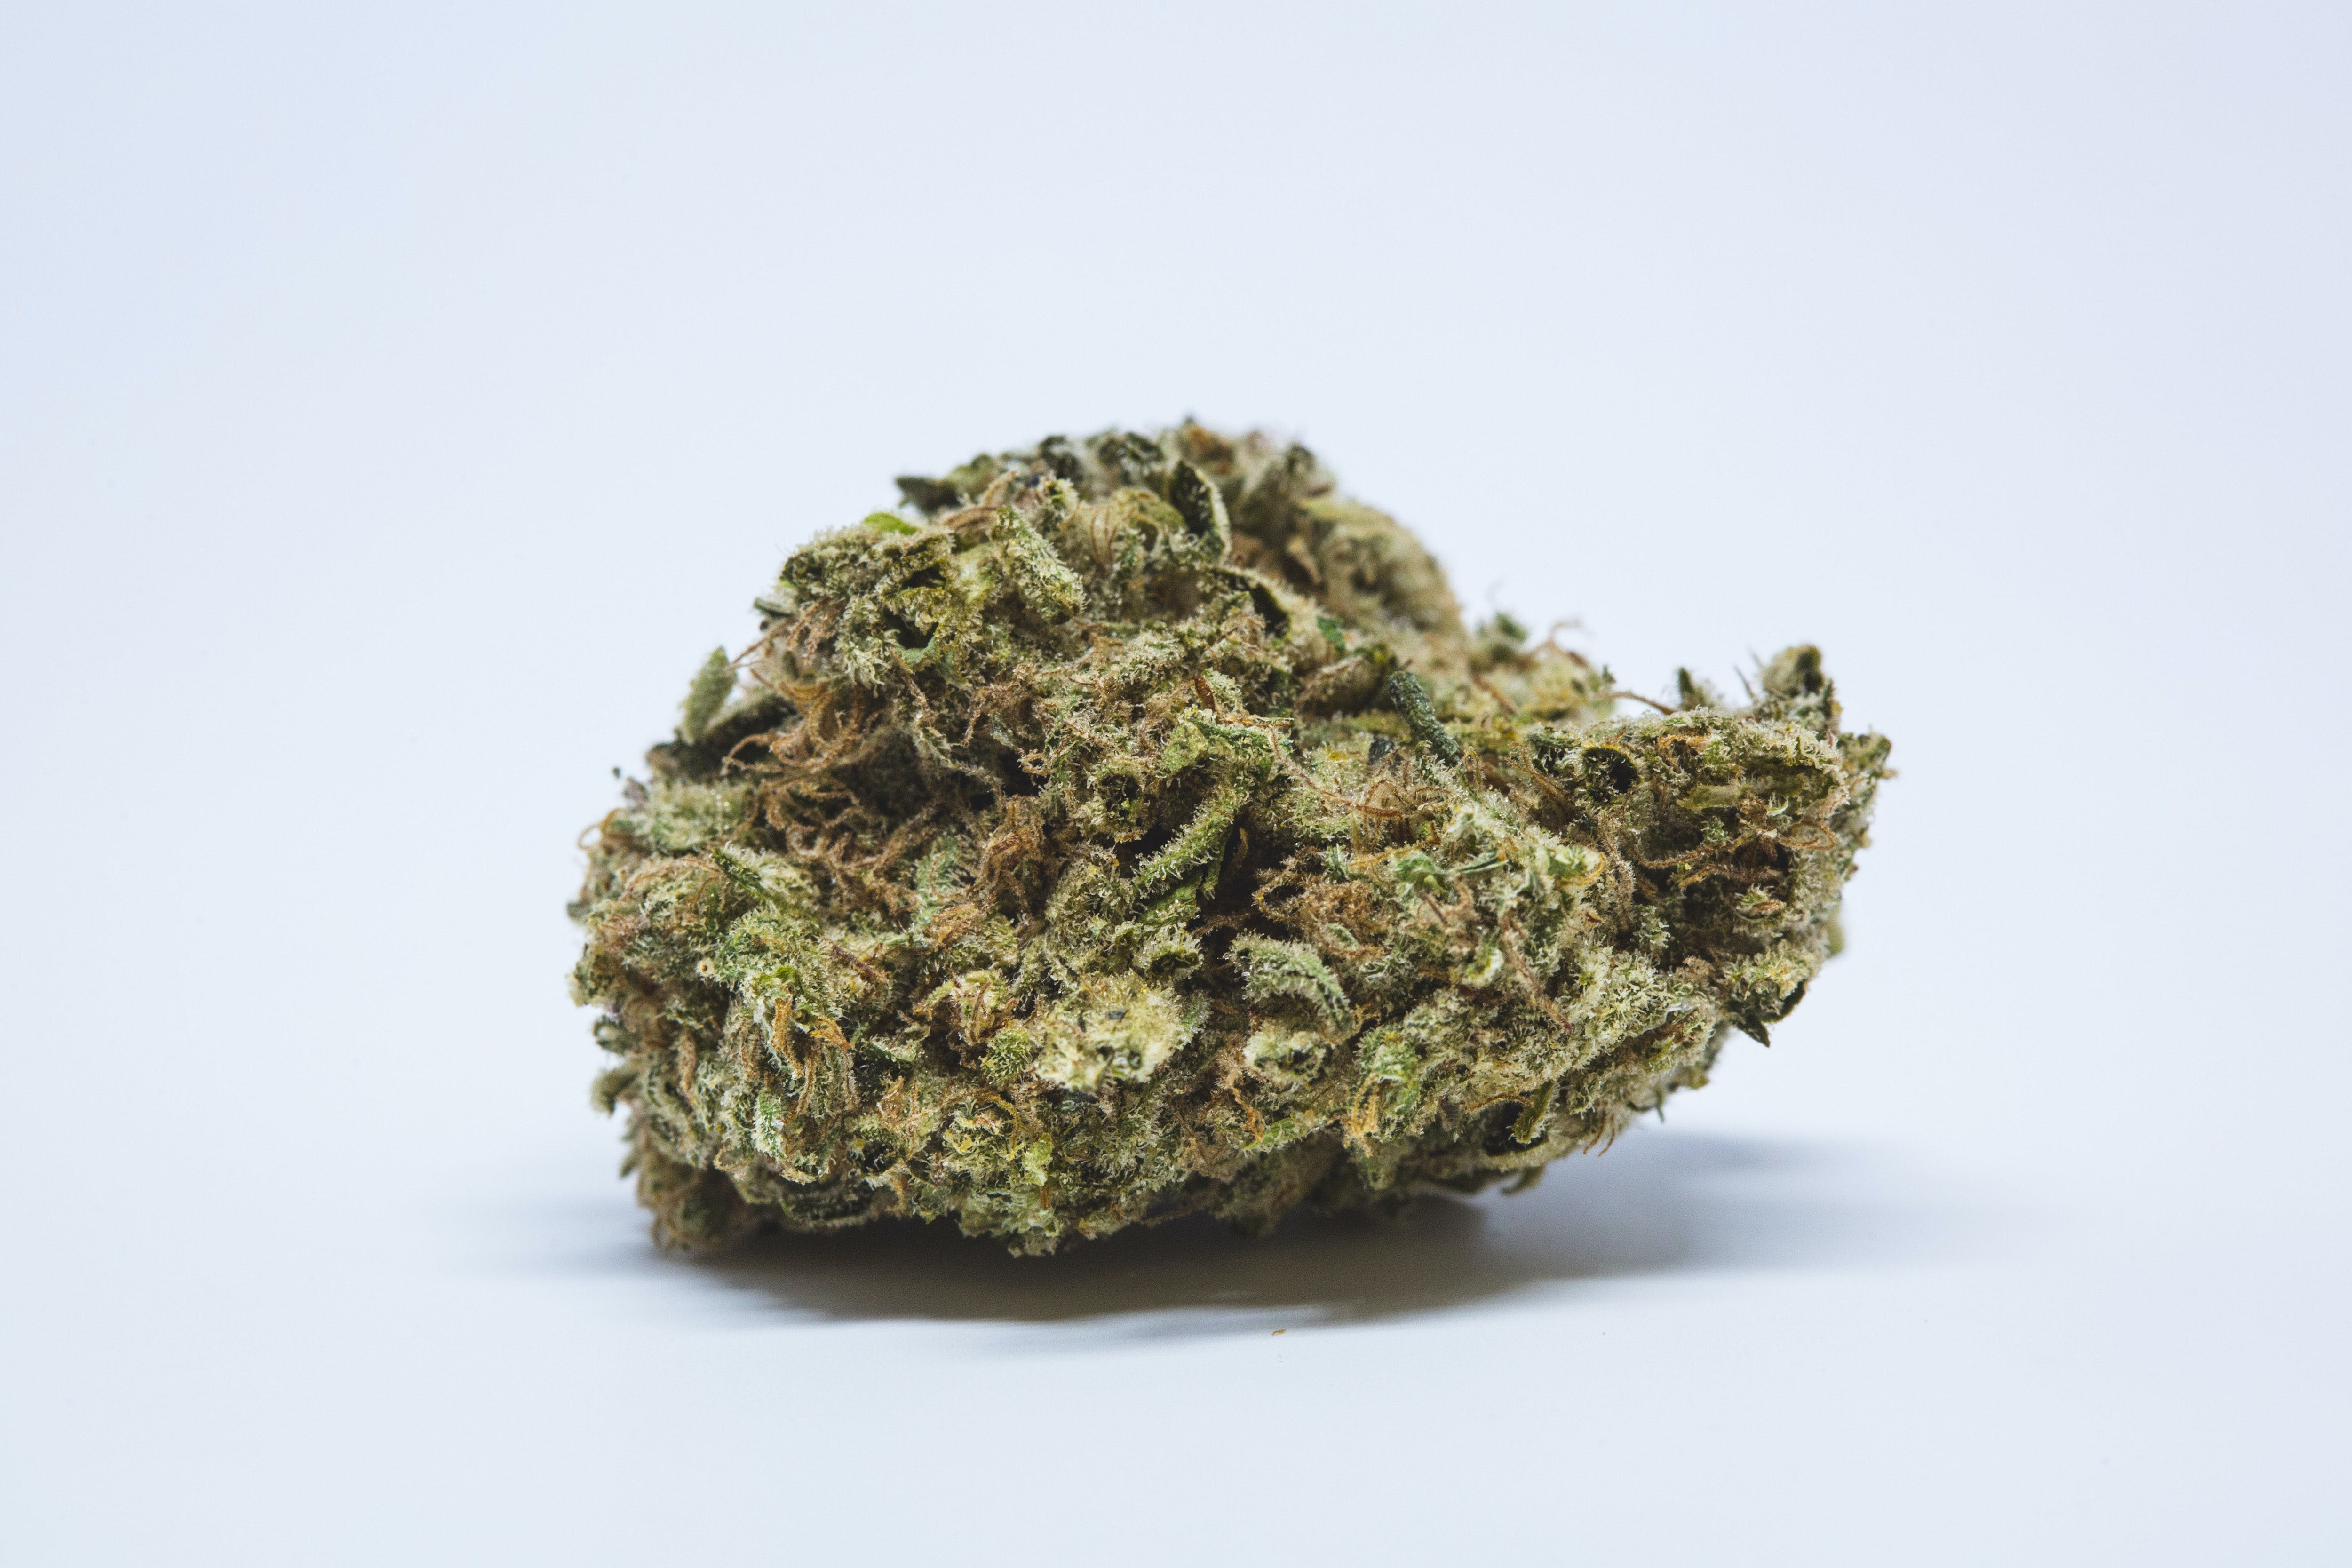 Lemon Haze Weed; Lemon Haze Cannabis Strain; Lemon Haze Sativa Marijuana Strain